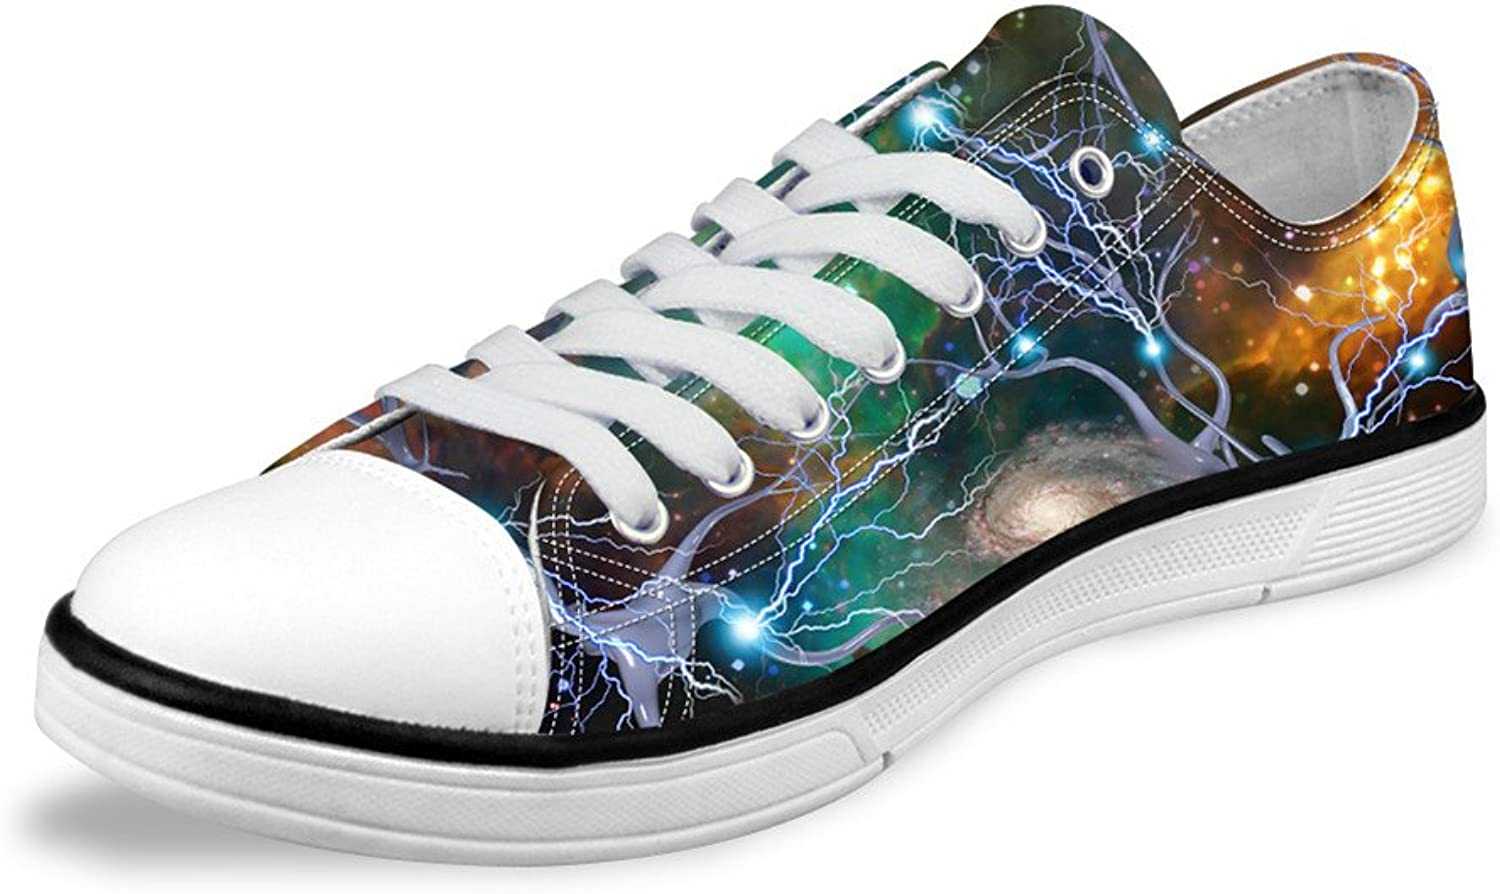 FOR U DESIGNS Stylish Personalized Lo-top Lace Up Sneaker Canvas shoes for Women US 11